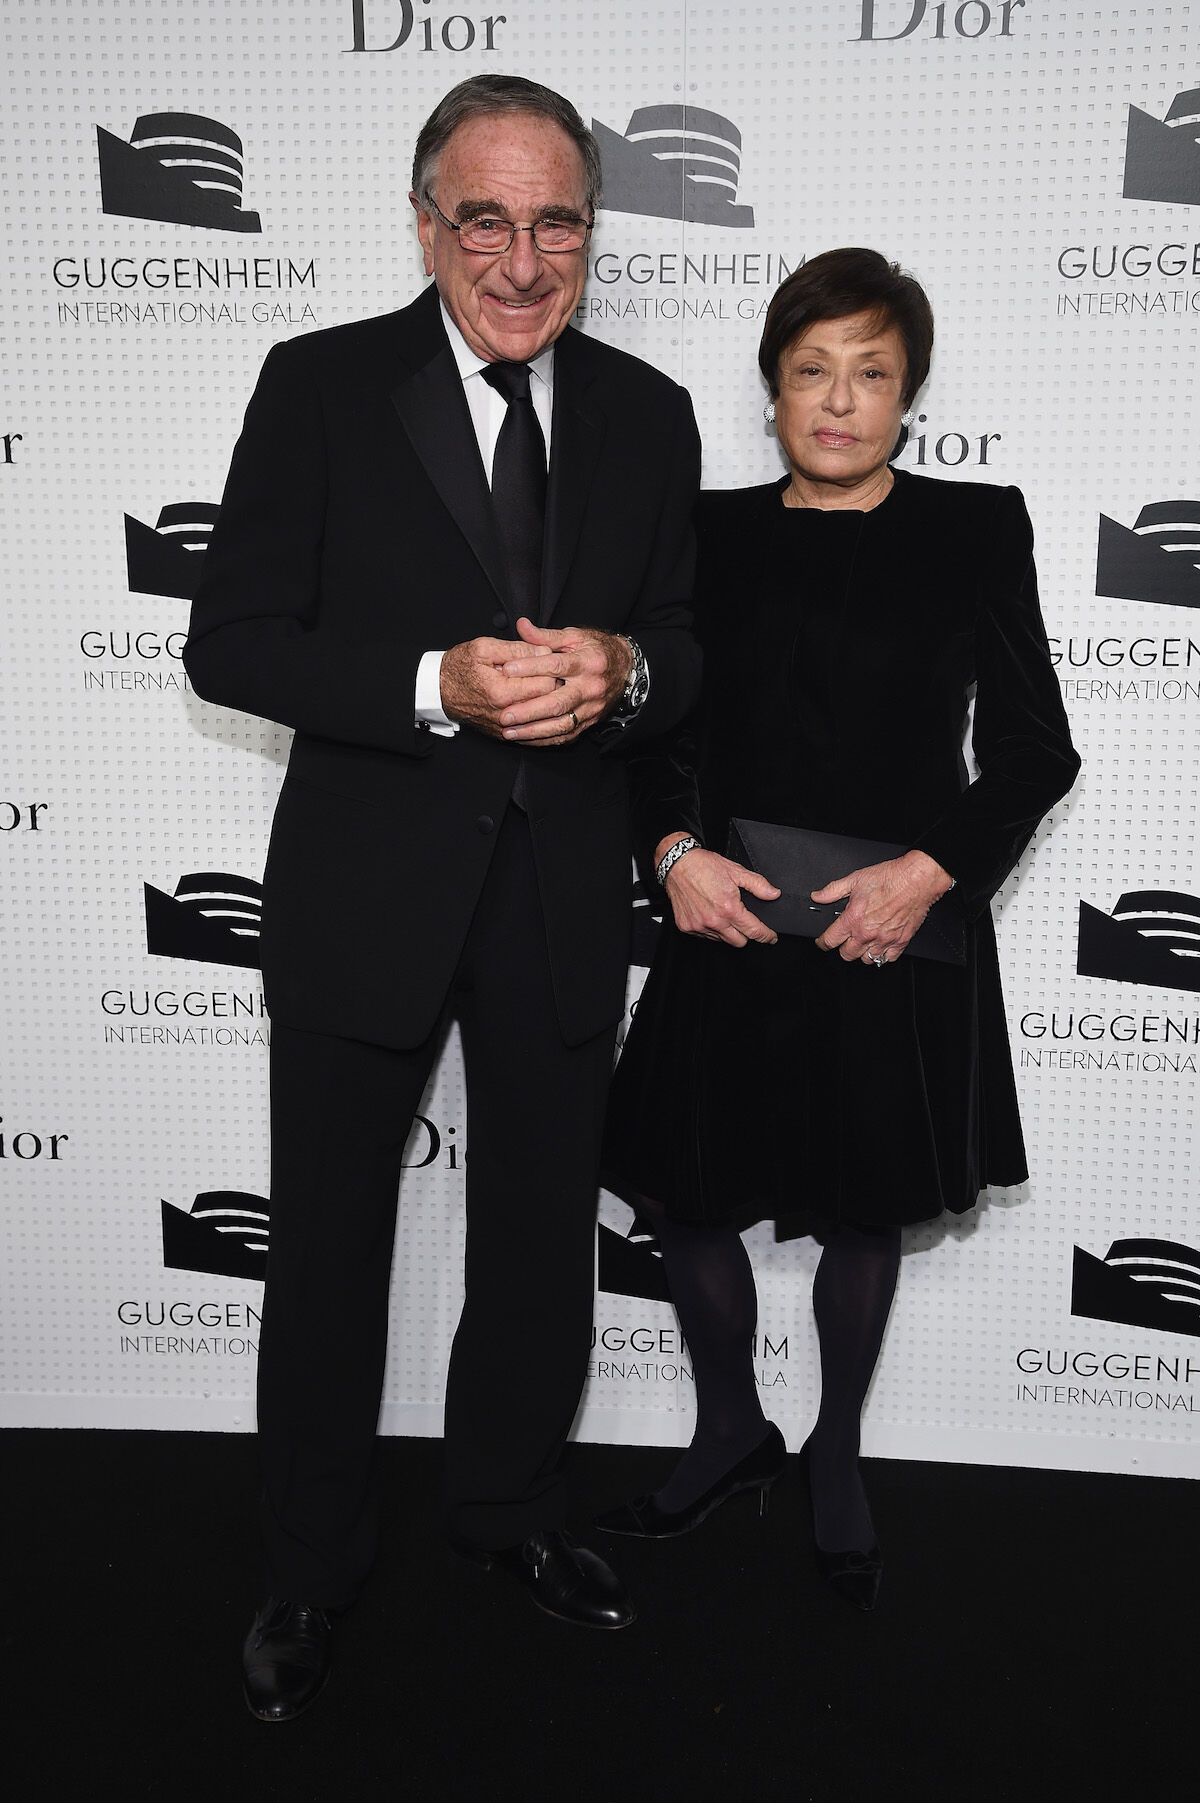 Harry and Linda Macklowe at a Guggenheim gala in 2014. Photo by Dimitrios Kambouris/Getty Images for Dior.